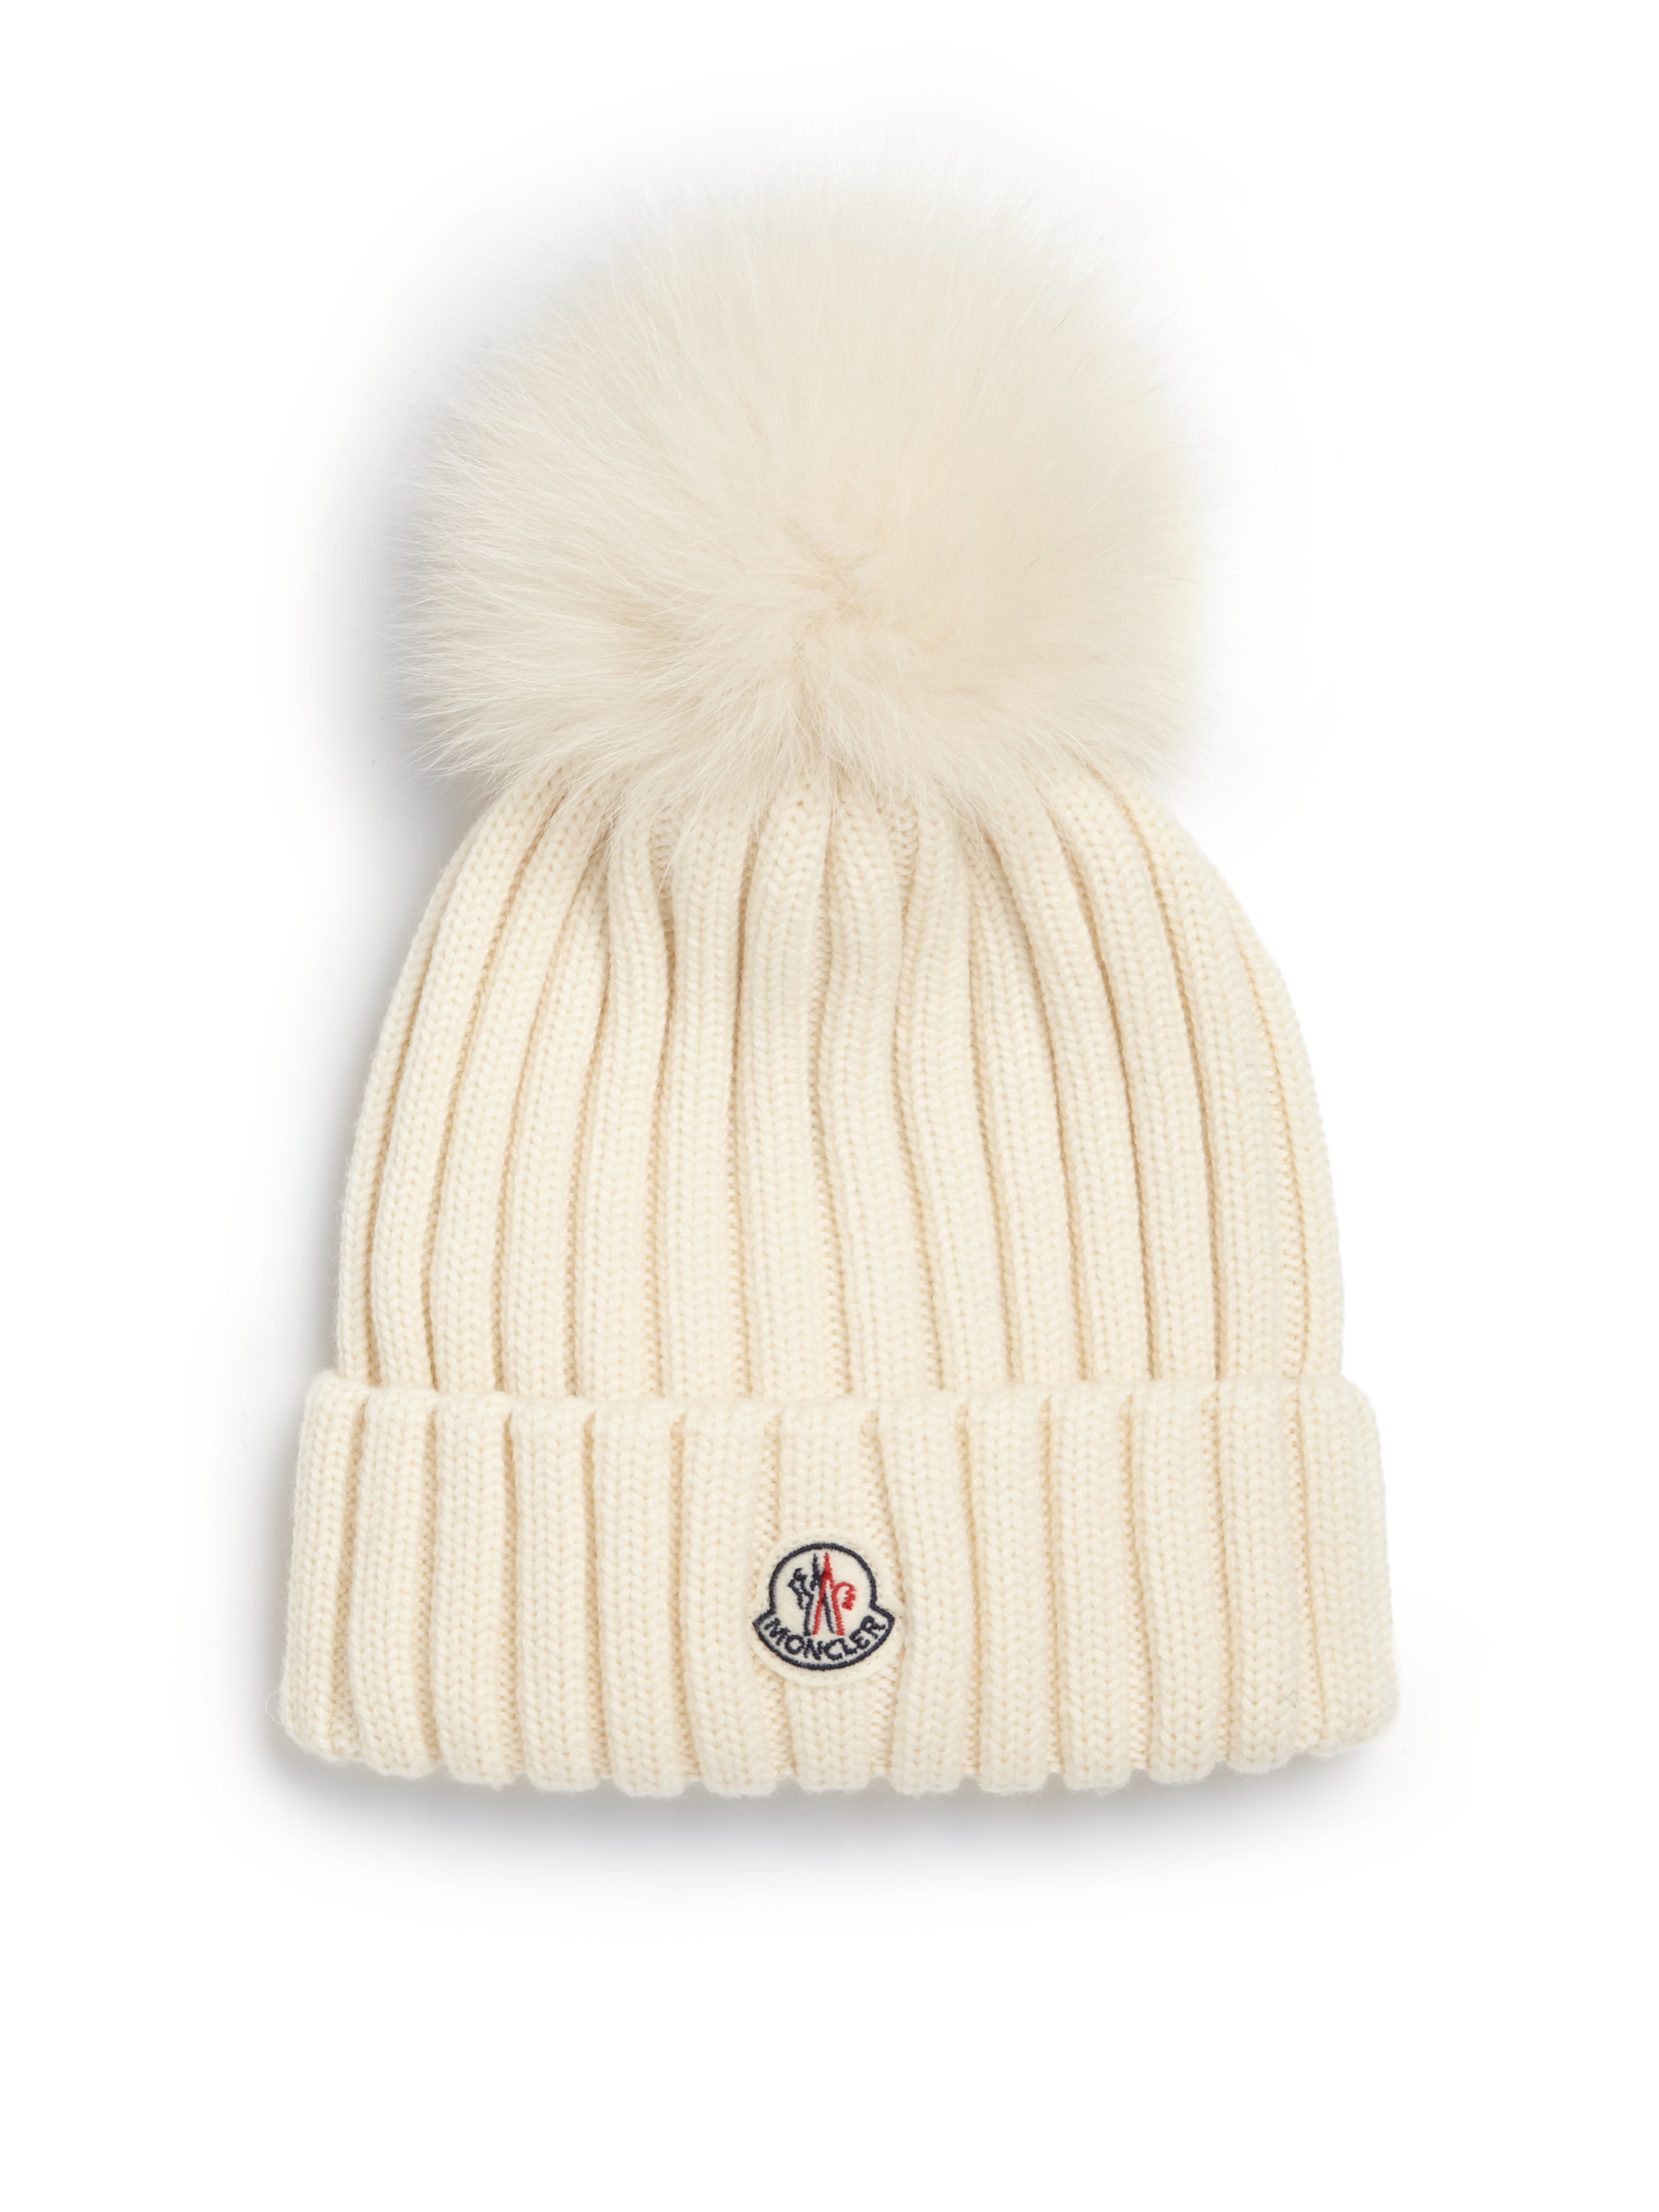 Lyst - Moncler Fur Pom-pom Ribbed Wool Hat in White 43f82df1b5